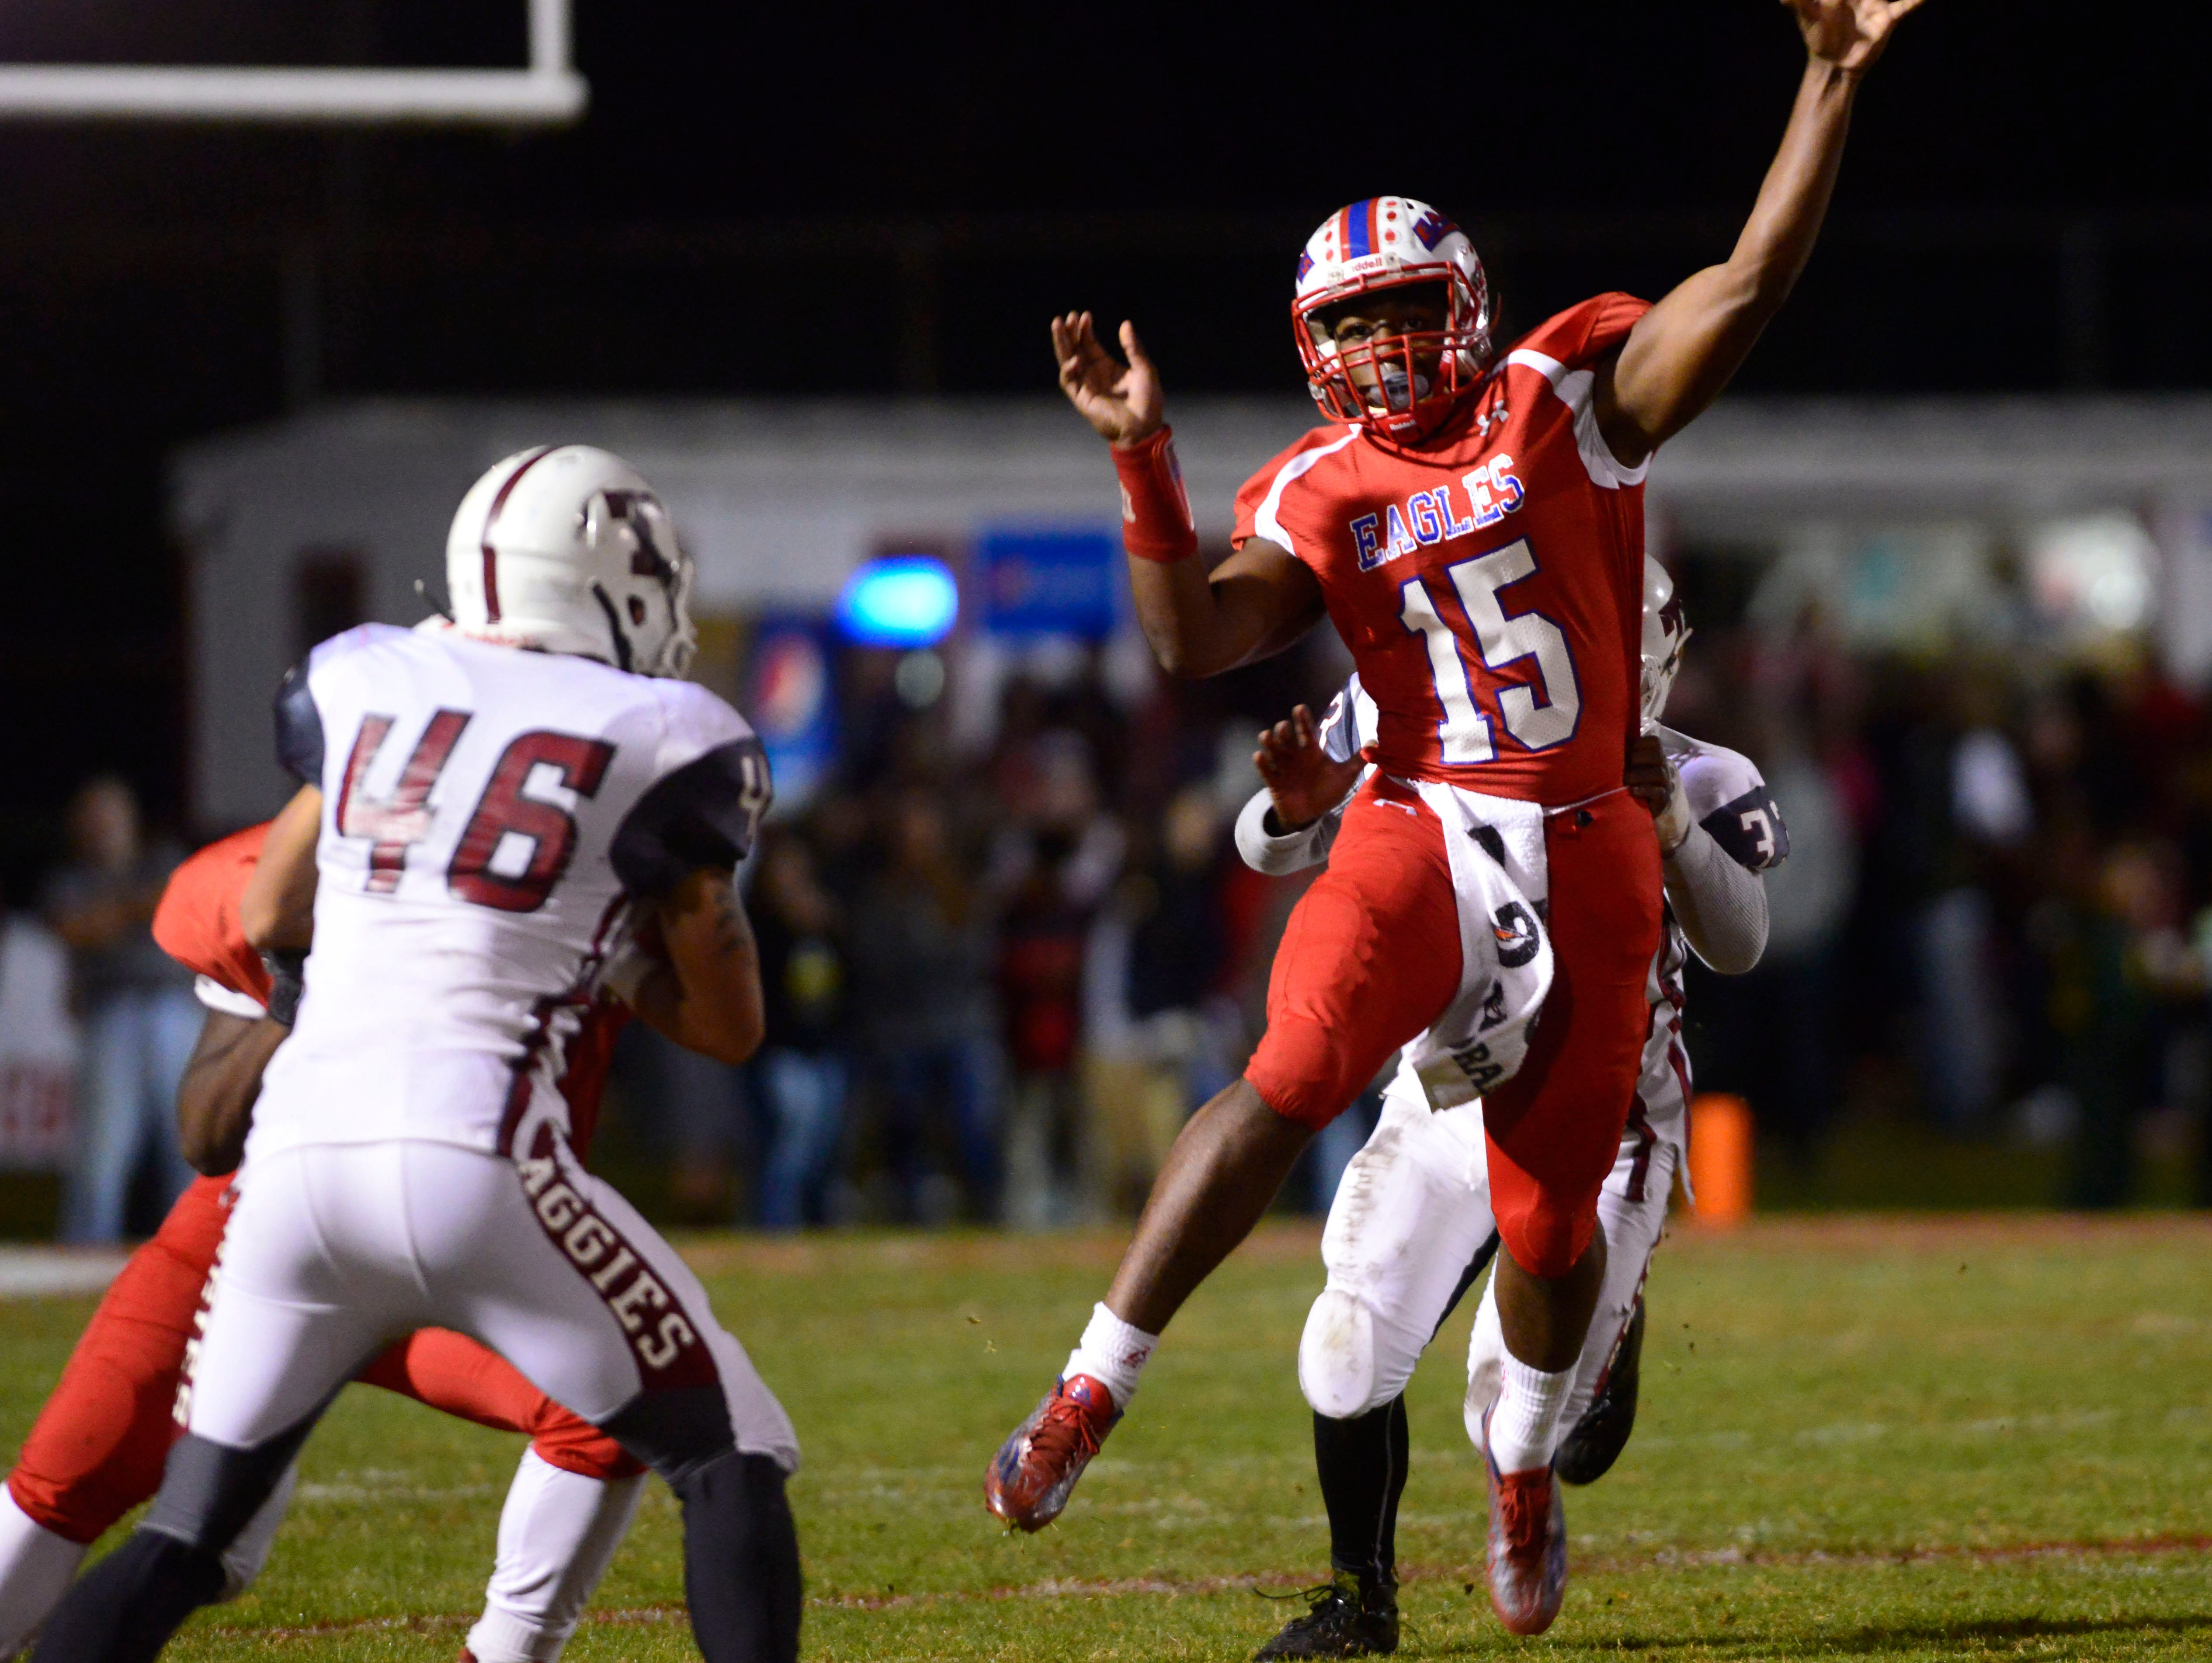 Pine Forest High School quarterback Xavier Saulsberry sends the ball to a receiver Friday night while taking on Tate High in the Region 1-6A final. Tate beat Pine Forest 31-7.